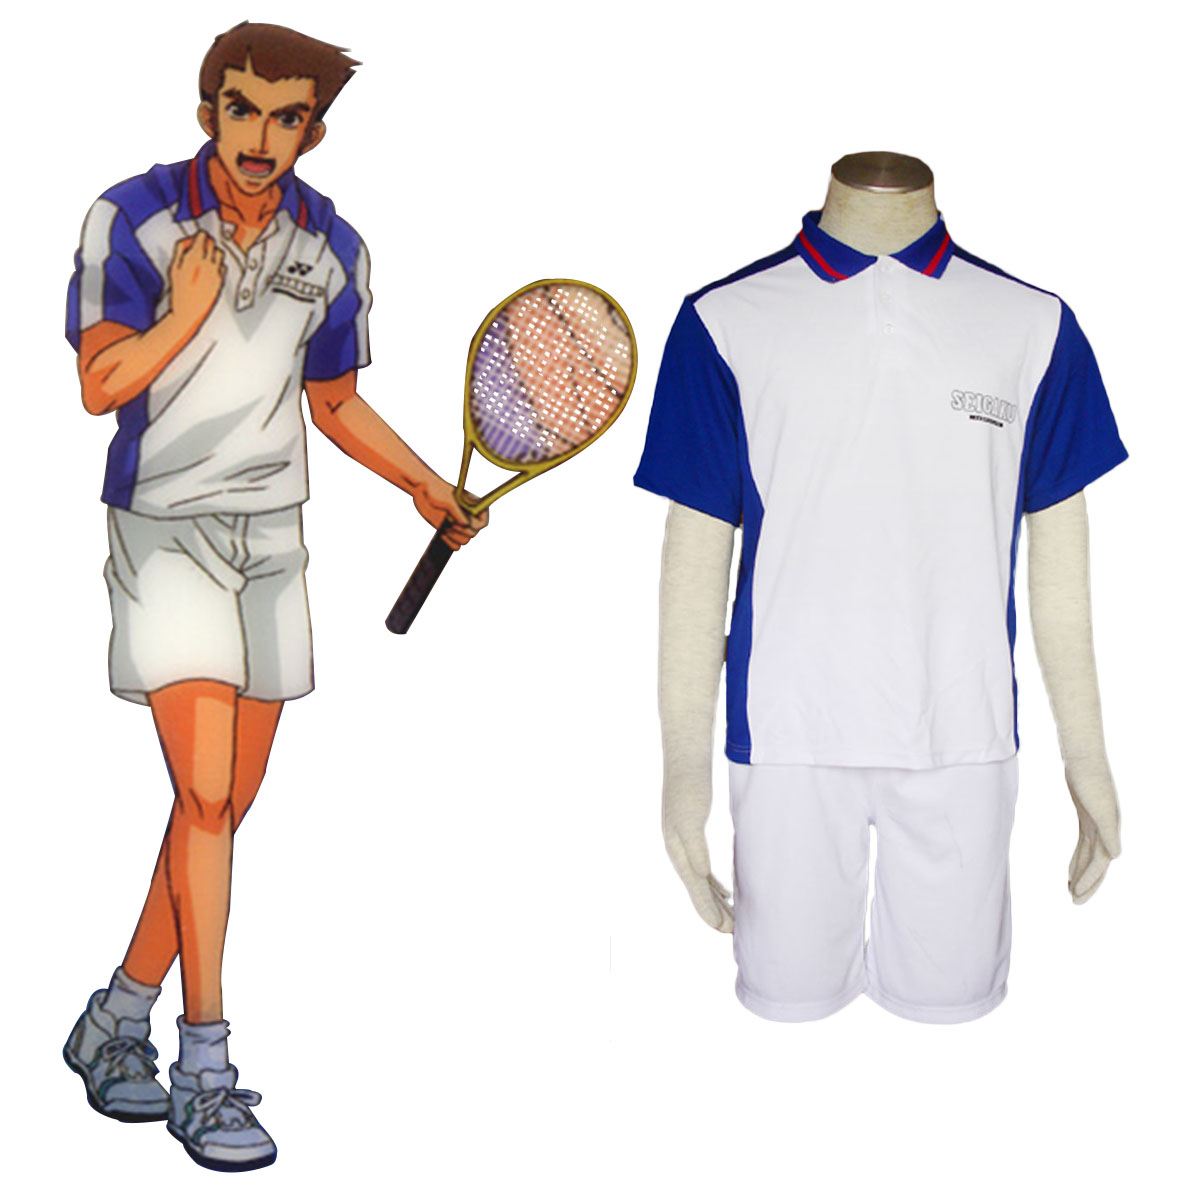 The Prince Of Tennis 96: De Lujo Disfraces De The Prince Of Tennis Youth Academy